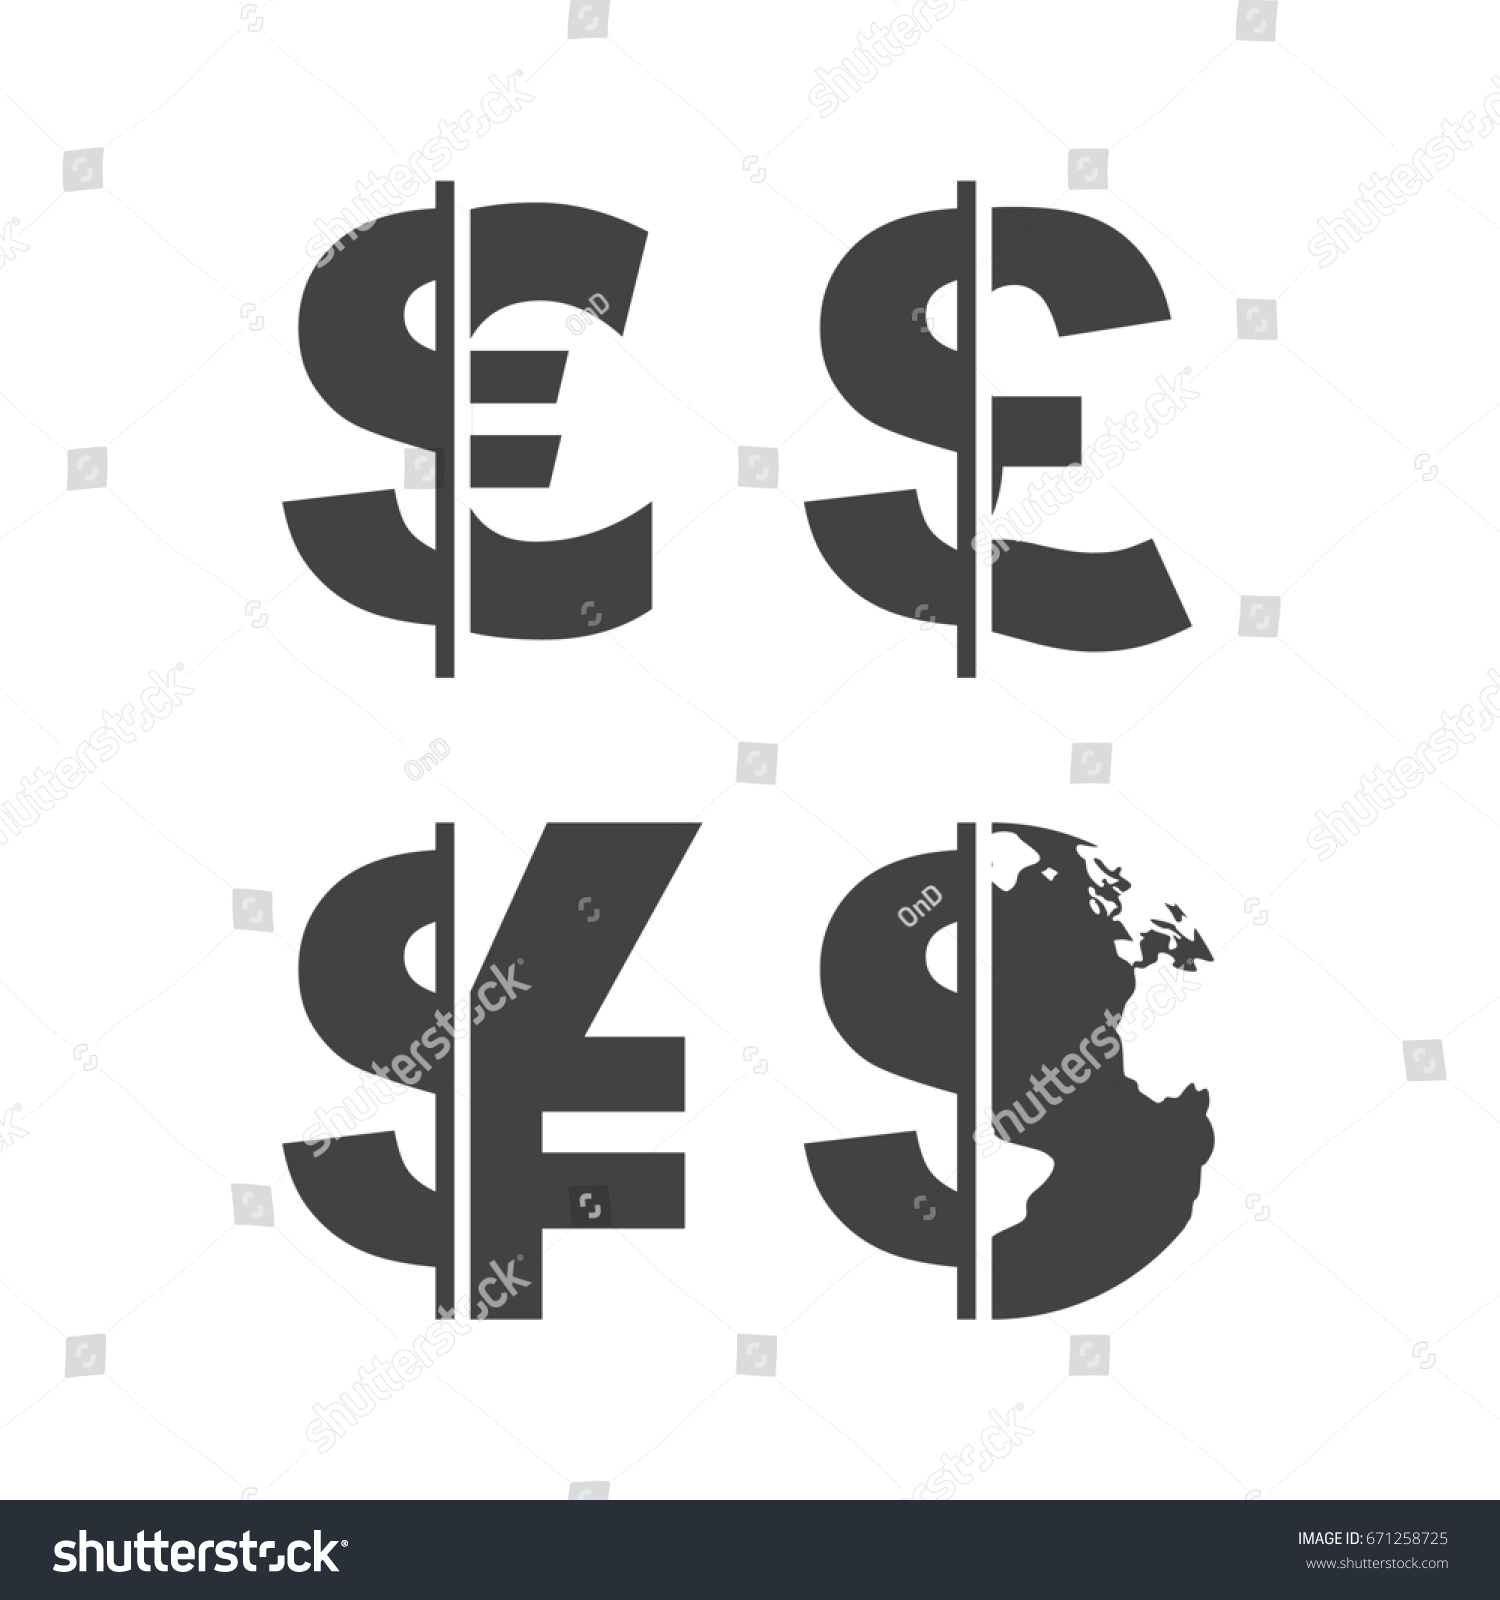 Royalty Free Stock Illustration Of Currency Exchange Icons Set